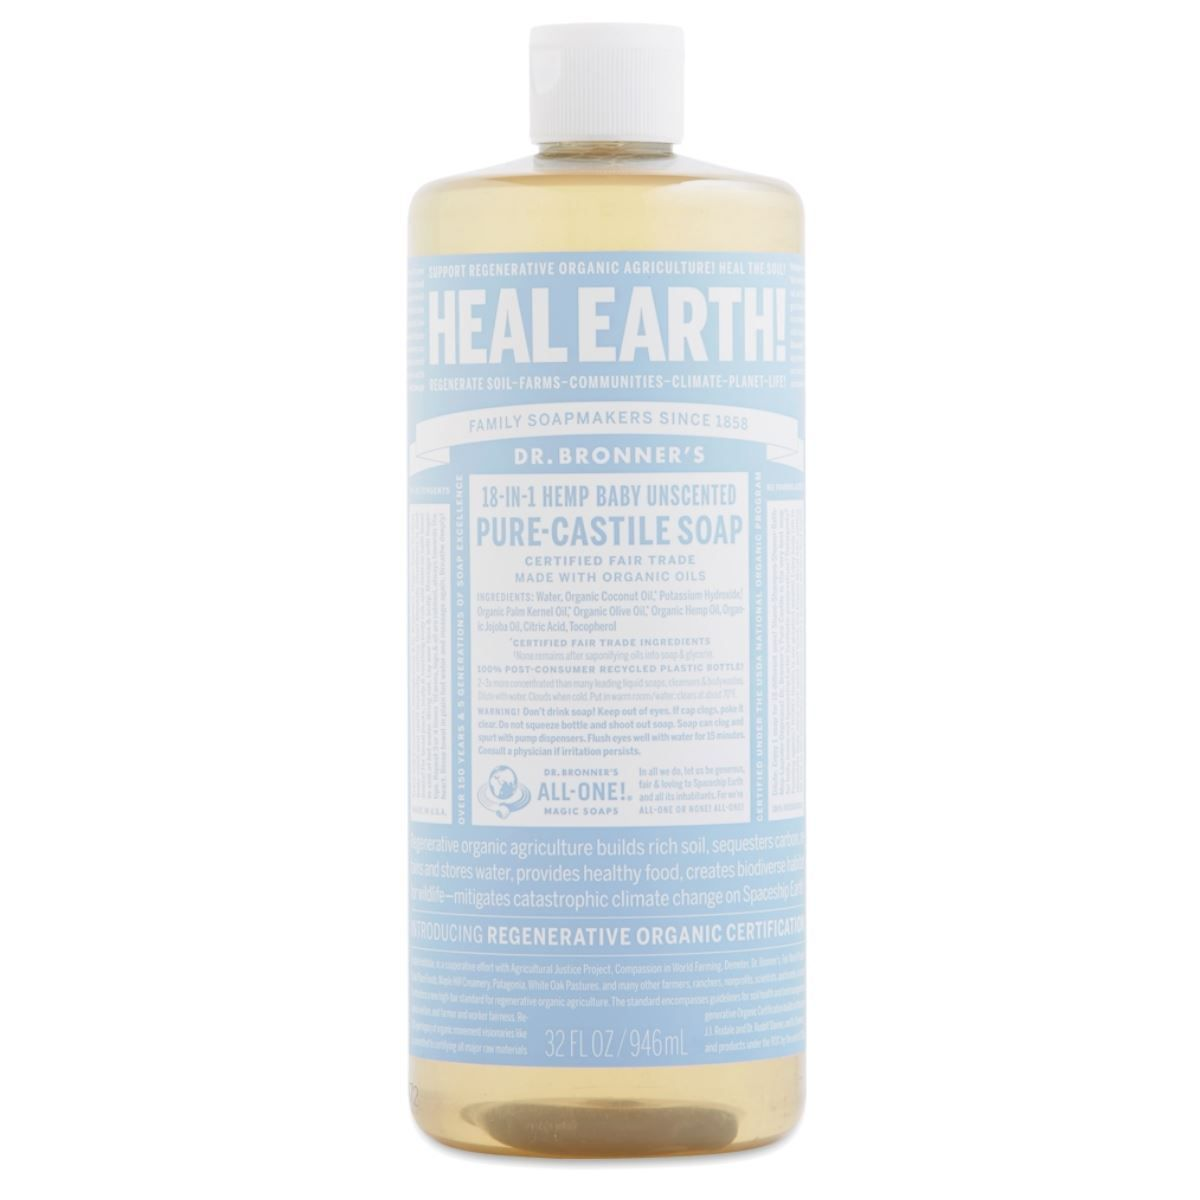 Baby-Mild Unscented Castile Liquid Soap